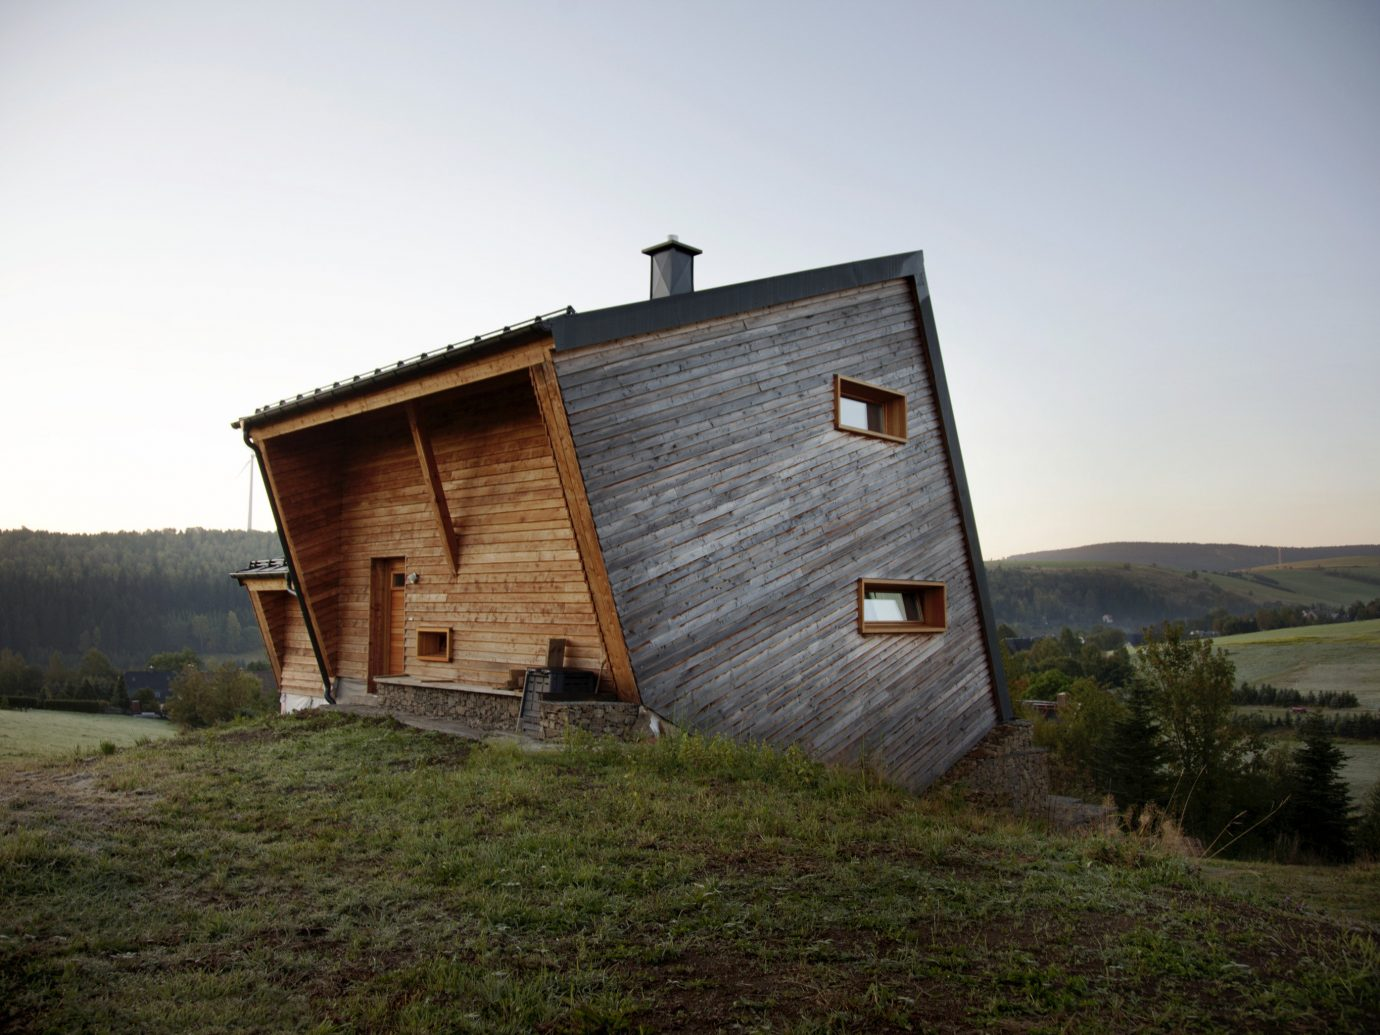 grass sky outdoor house building rural area fortification mountain shack barn